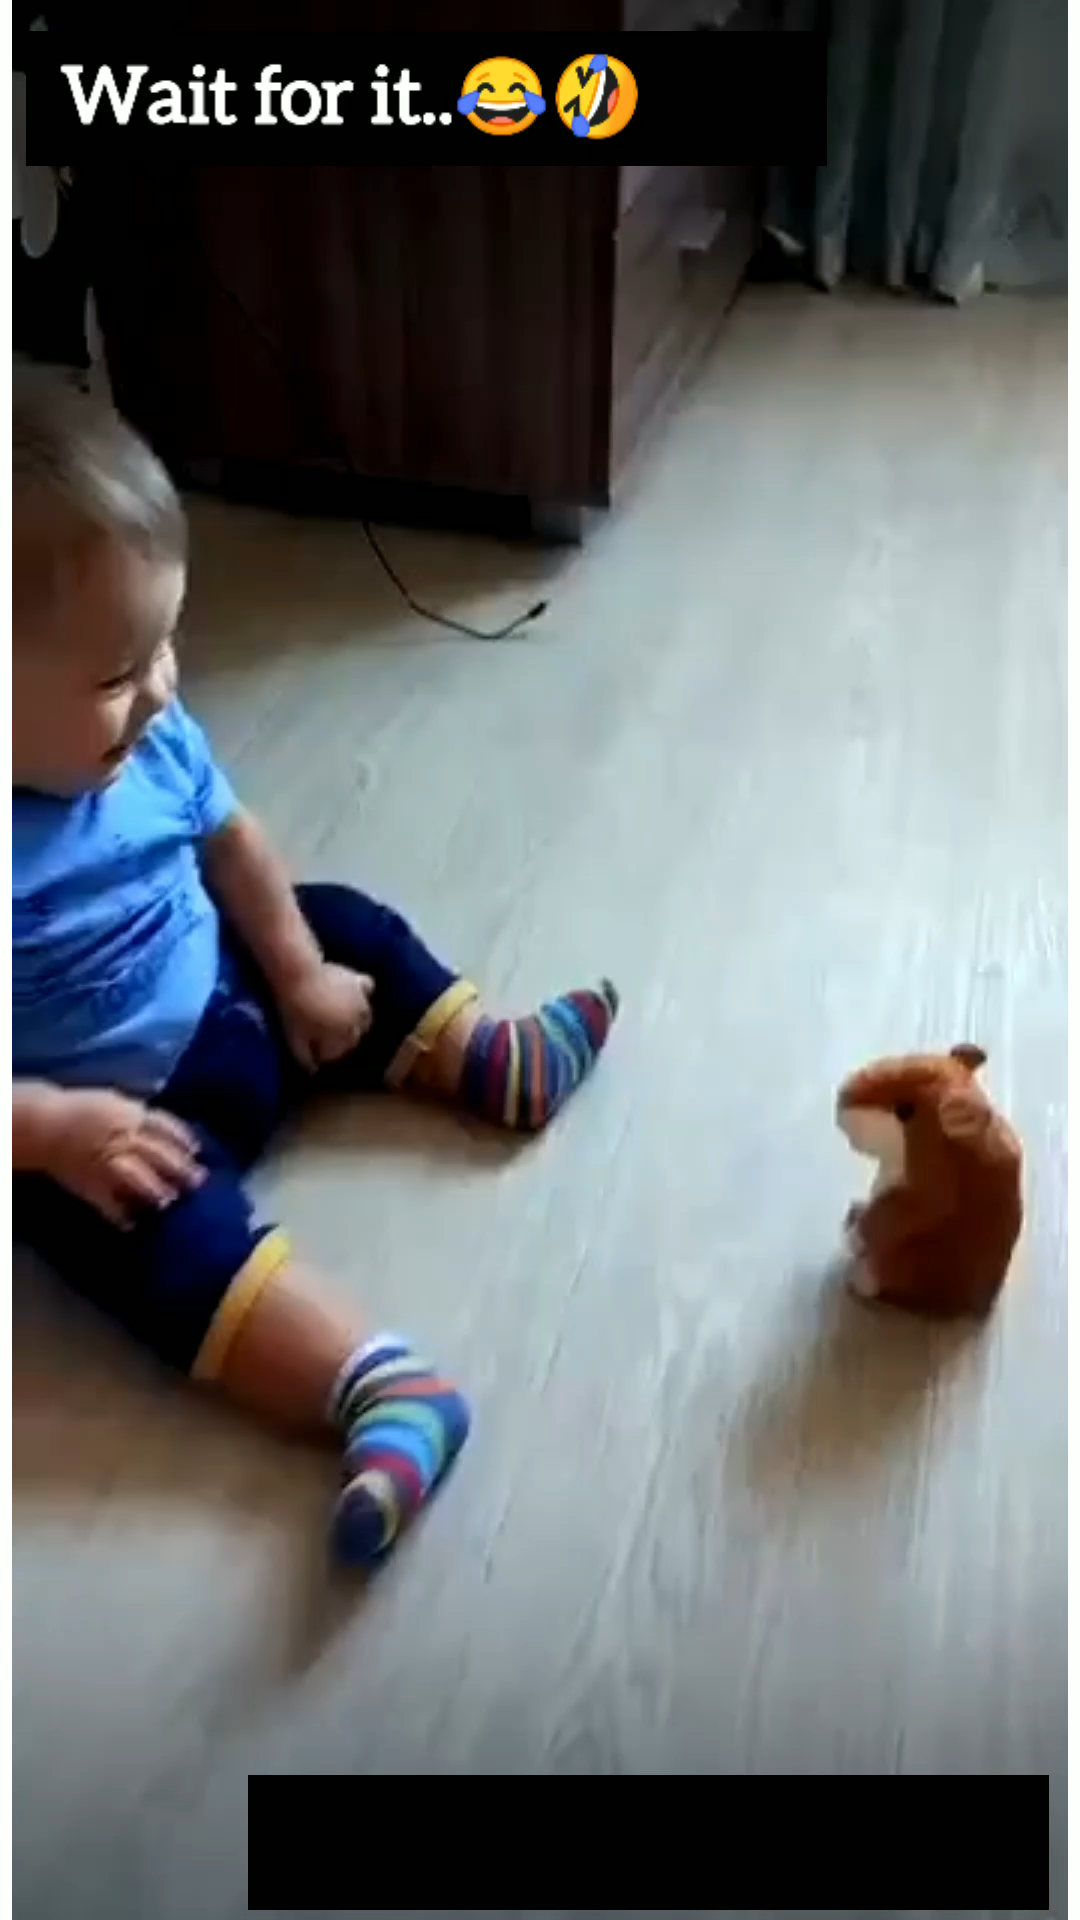 Funny Baby Fails Try Not To Laugh Fun Comedy Funny Baby Photos Cute Funny Baby Videos Funny Baby Jokes